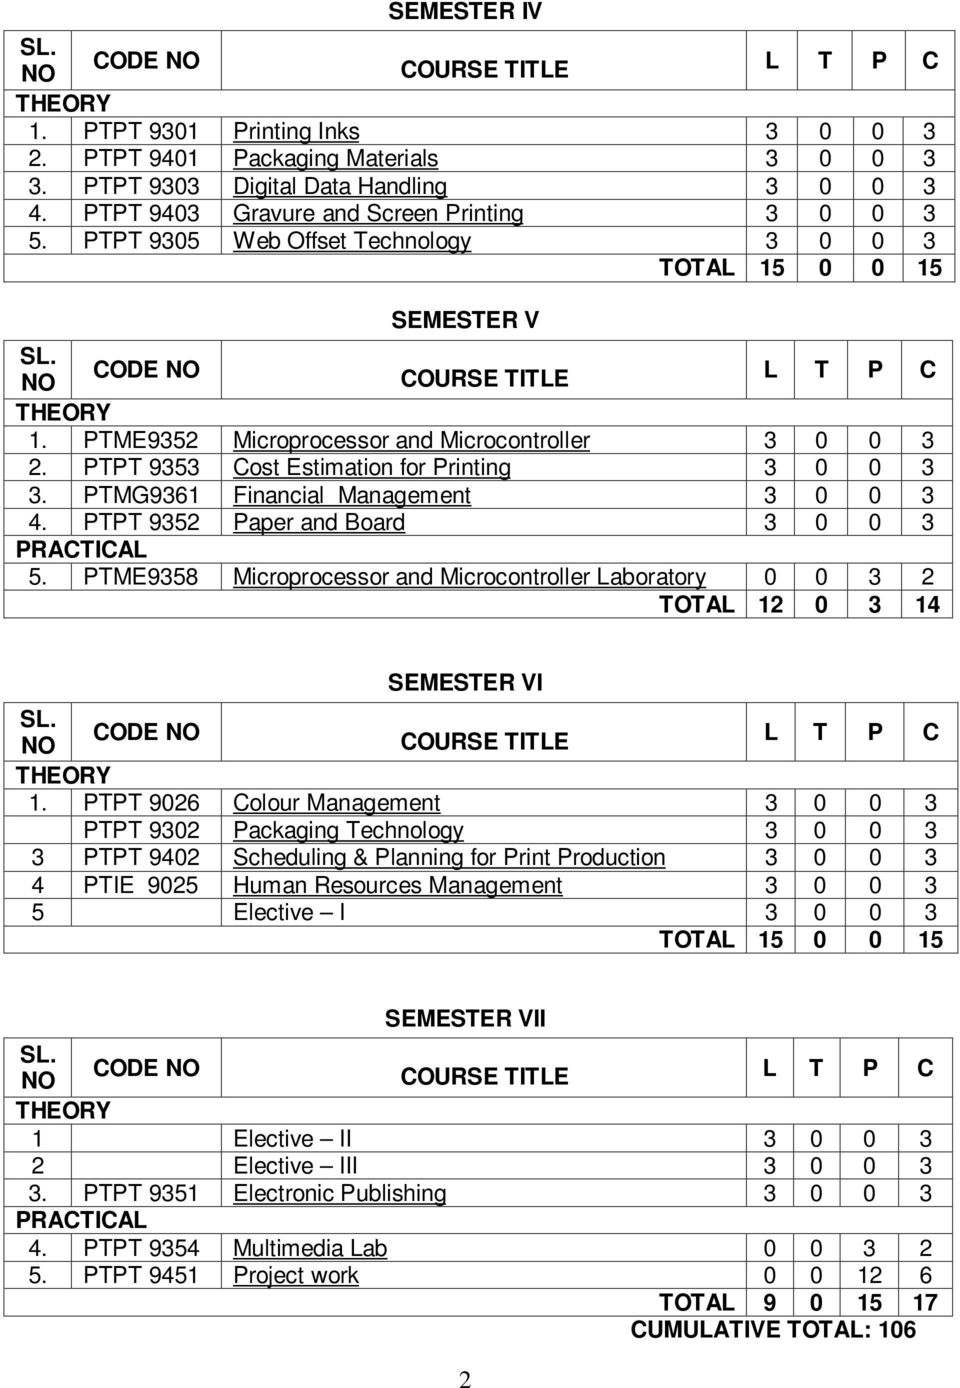 University Departments Anna Chennai Statics Free Body Diagram Examples Estic Merian 6thchapter 3 Ptmg9361 Financial Management 4 Ptpt 9352 Paper And Board Practical 5 Ptme9358 Microprocessor